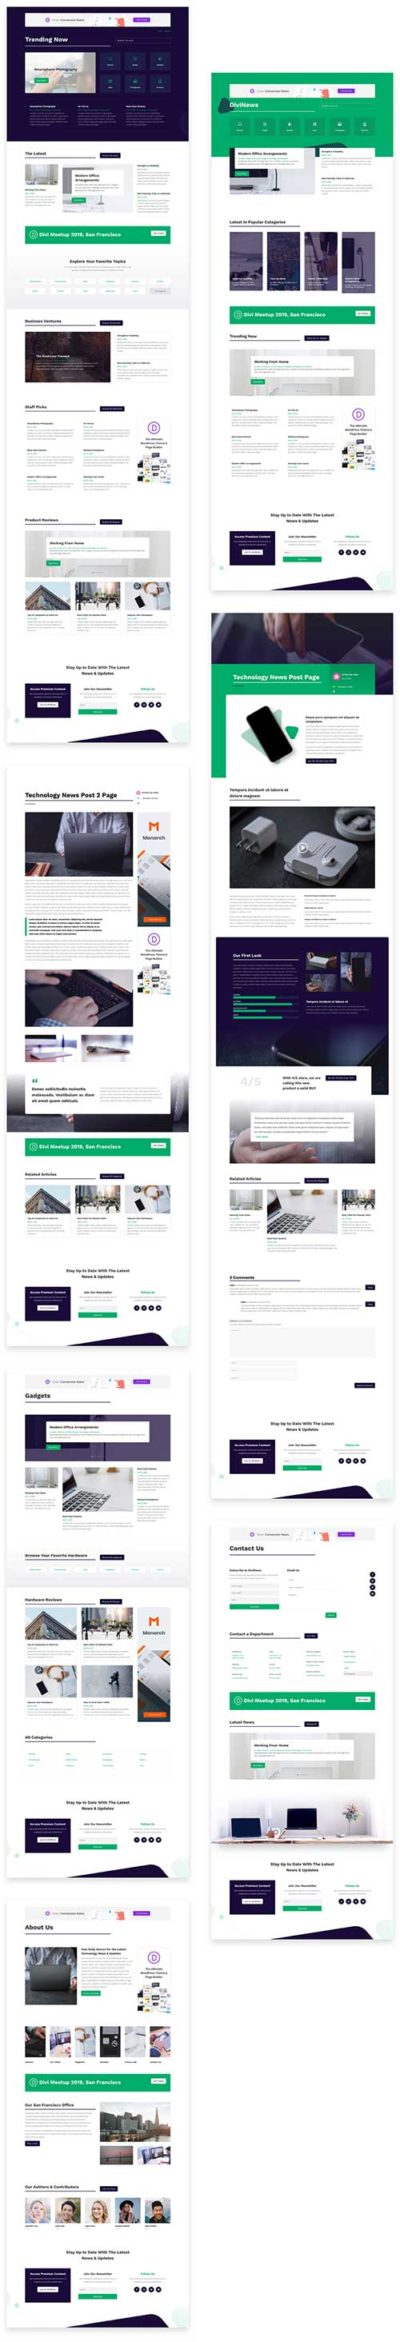 free divi blog layout